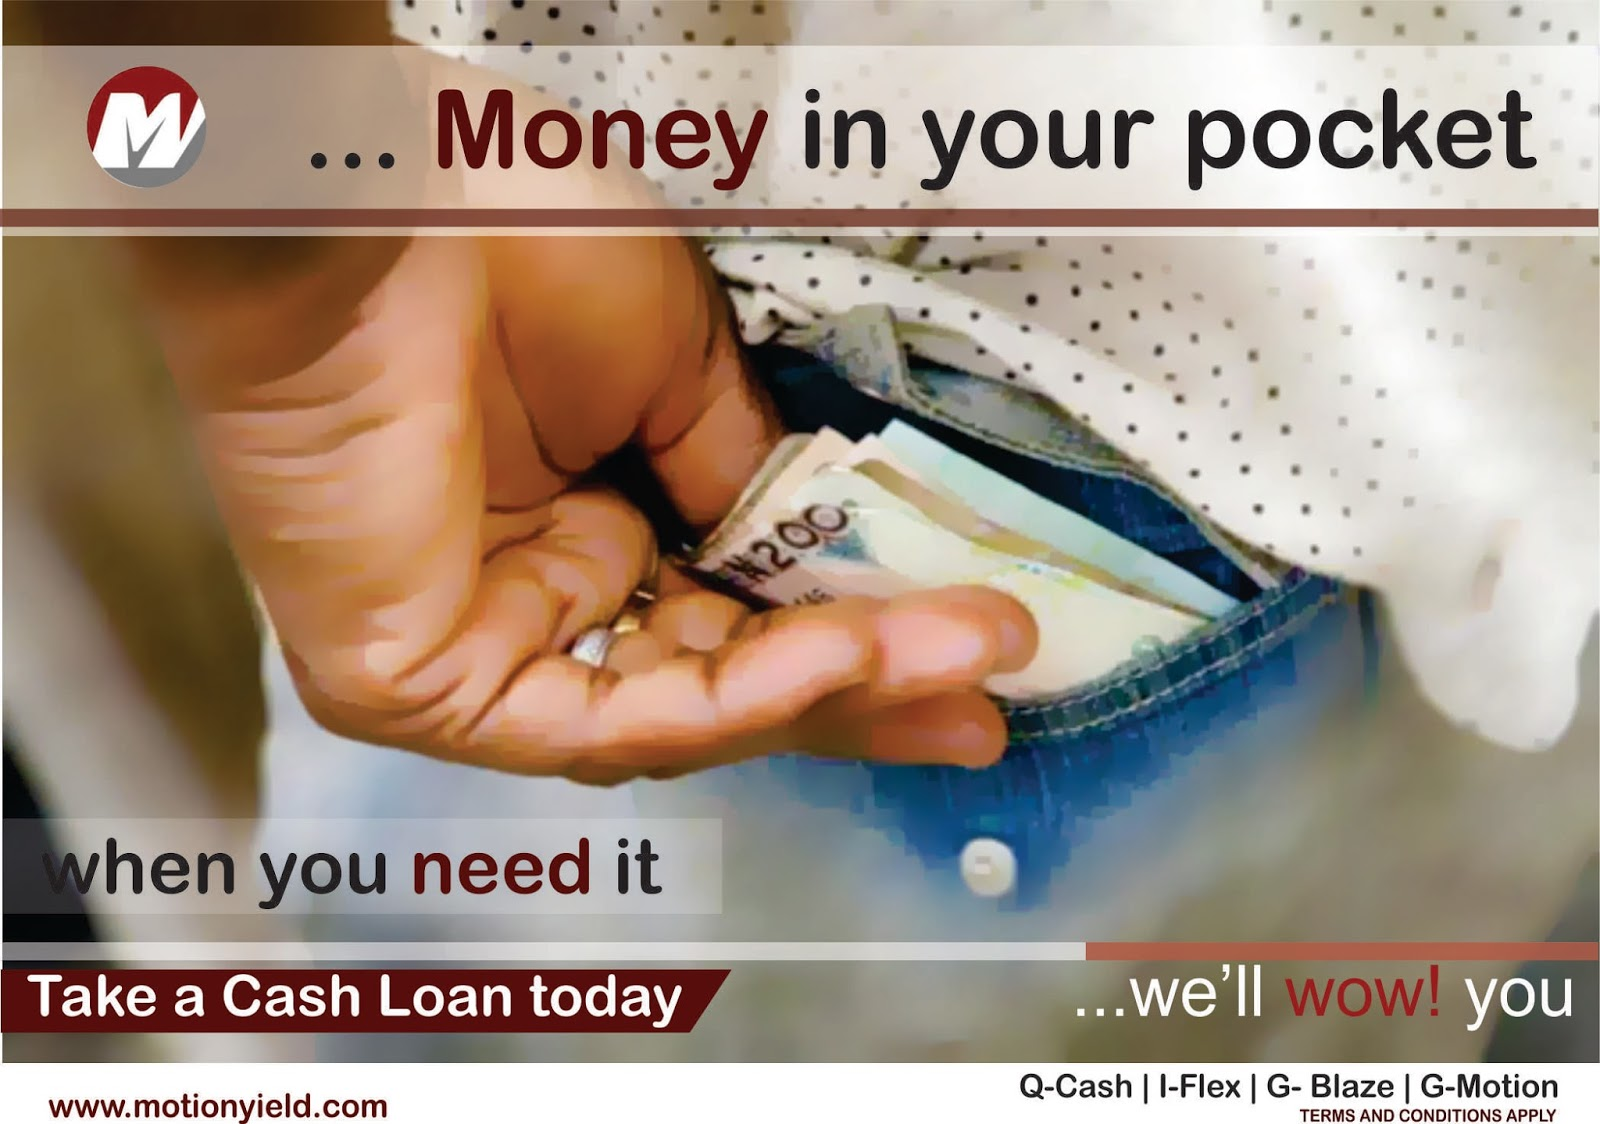 Online payday loan today picture 9